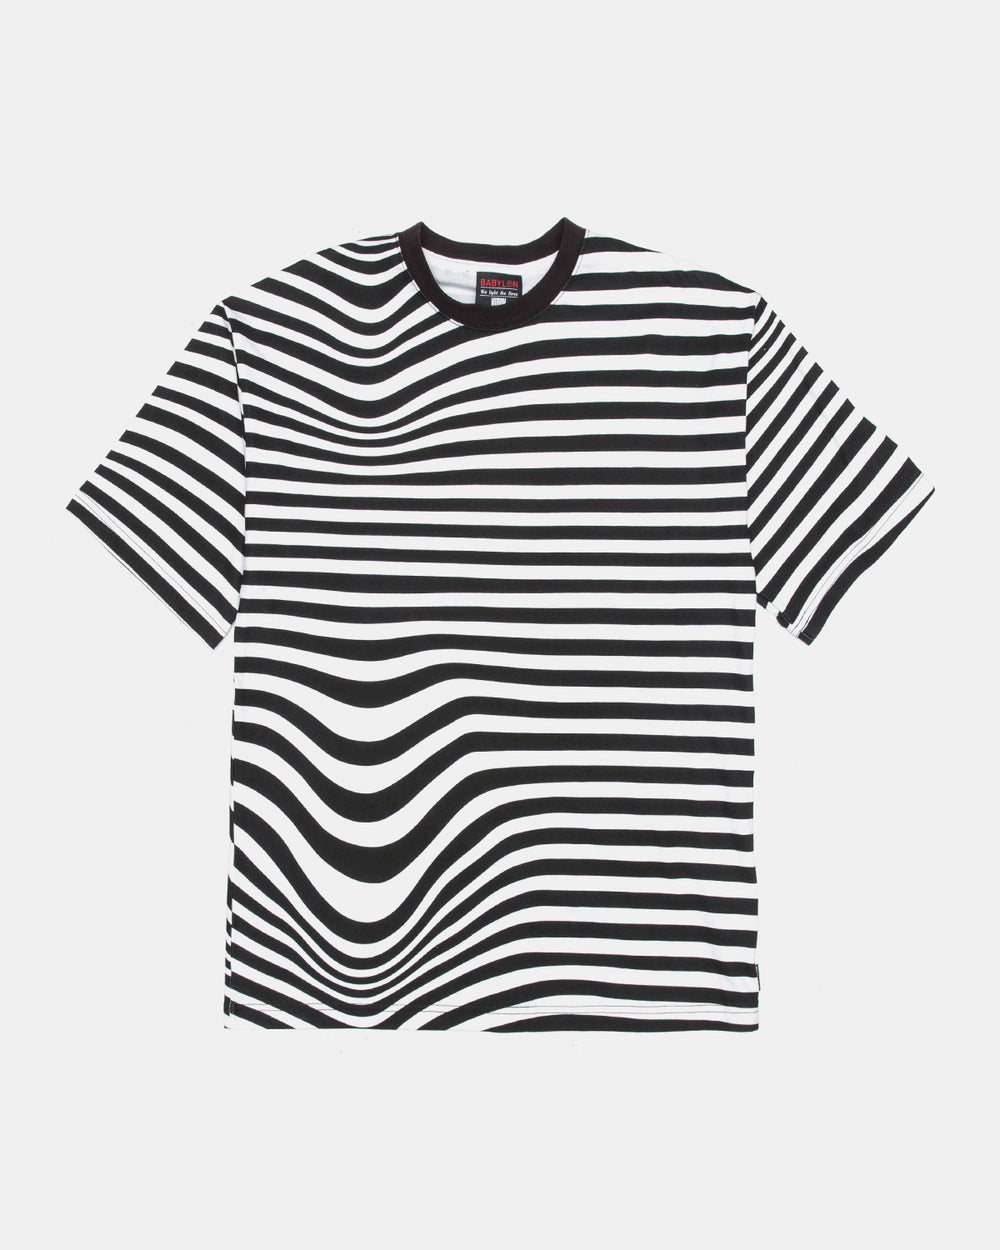 Babylon LA - Stripes Tee (Black | White)